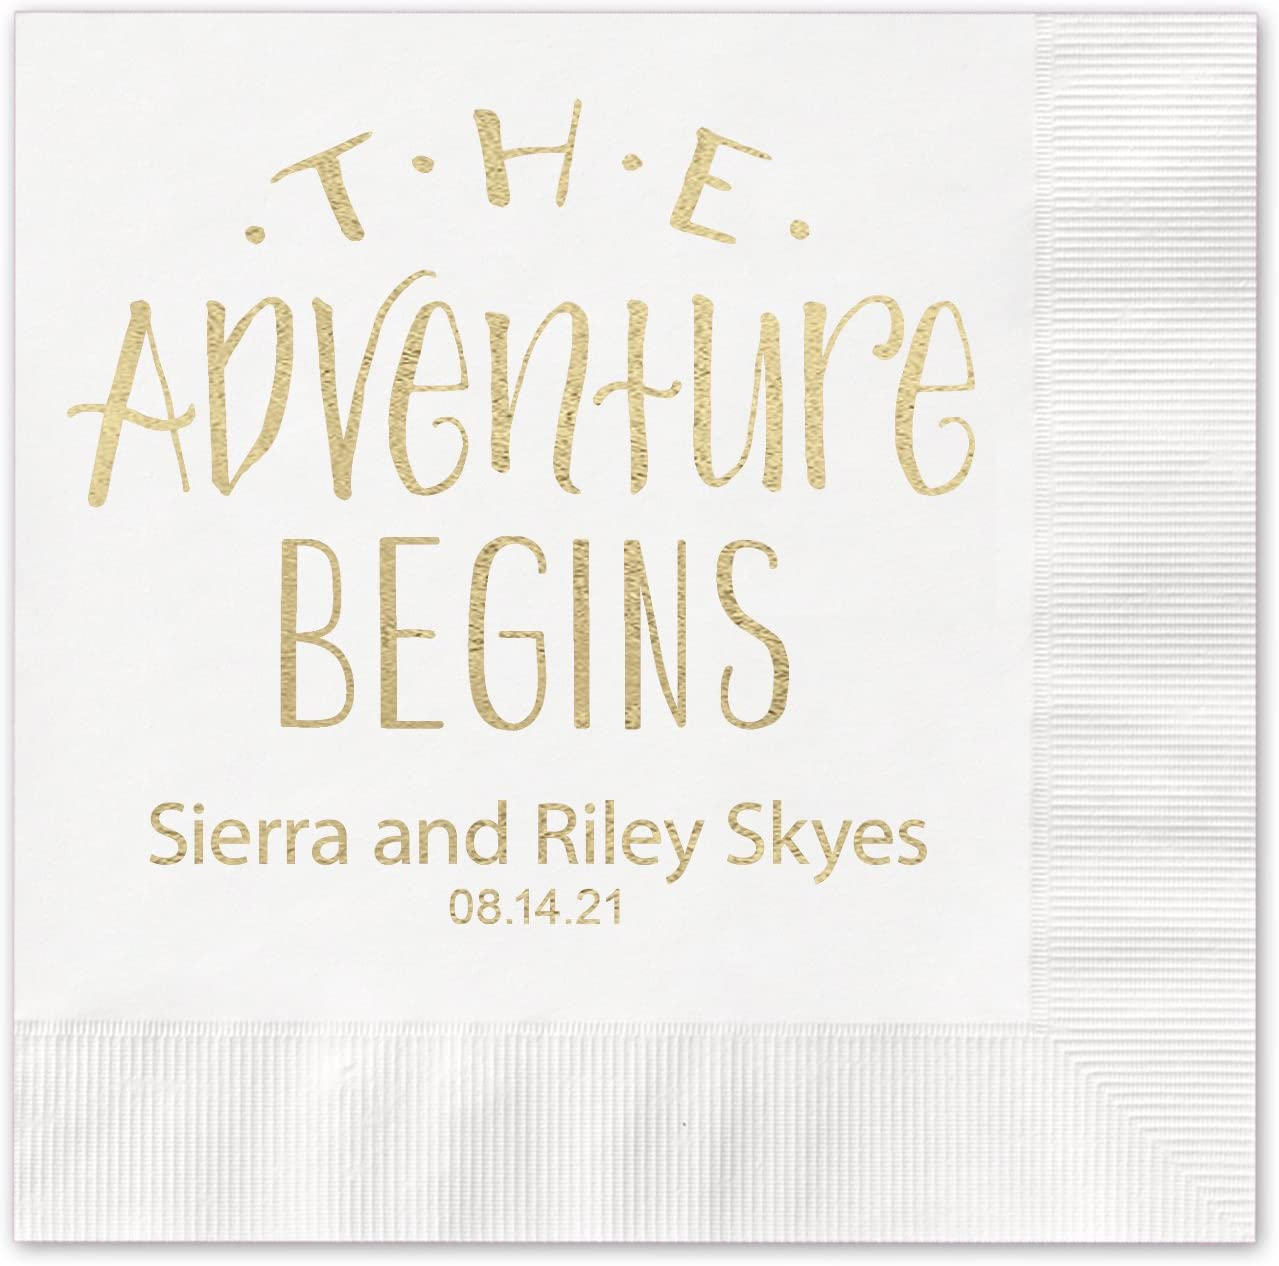 The Adventure Begins Personalized Beverage Cocktail Napkins - 100 Custom Printed White Paper Napkins with choice of foil